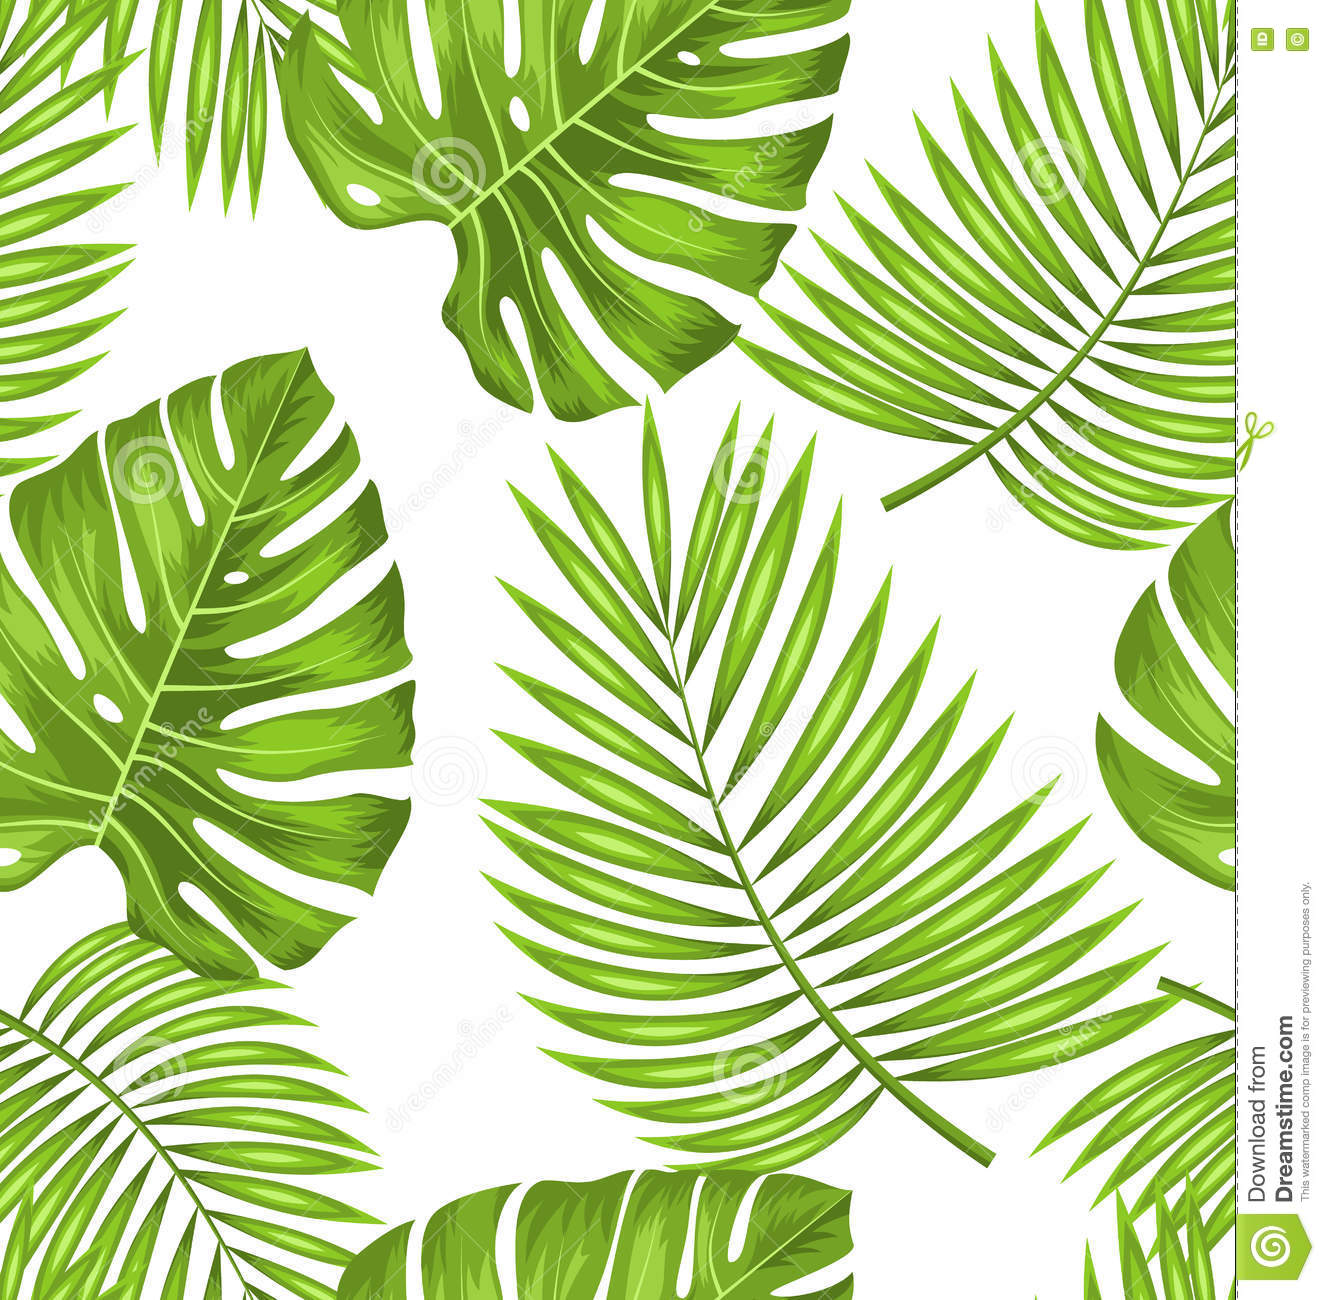 Seamless Wallpaper With Green Tropical Leaves For Fabric Swatch Stock Vector Illustration Of